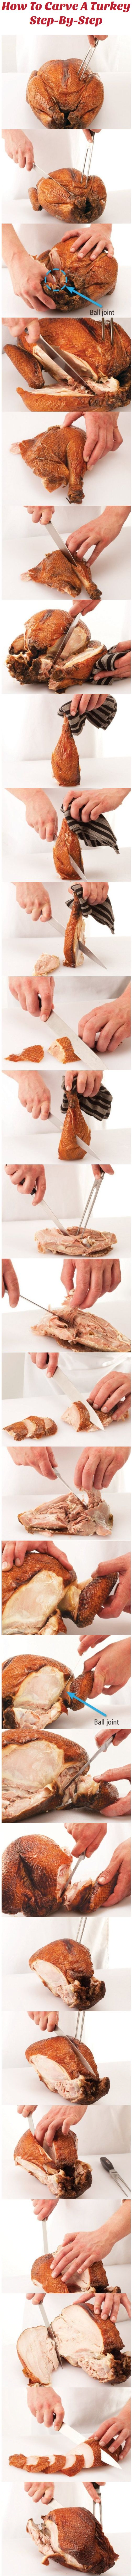 turkey carving...how to